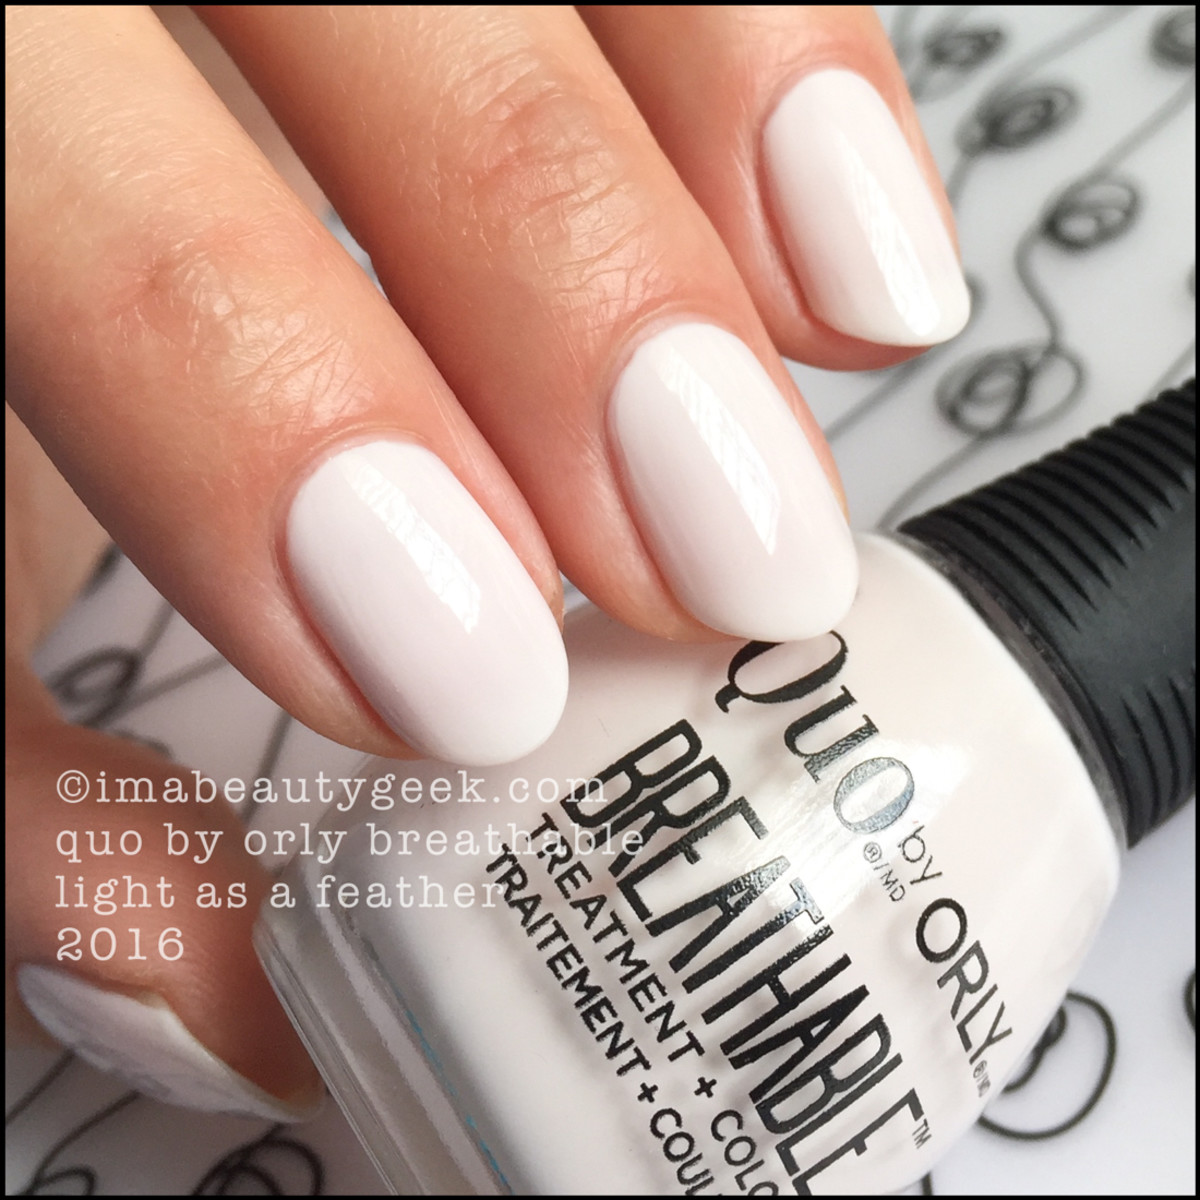 Orly Breathable Nail Polish_Quo by Orly Breathable Light as a Feather